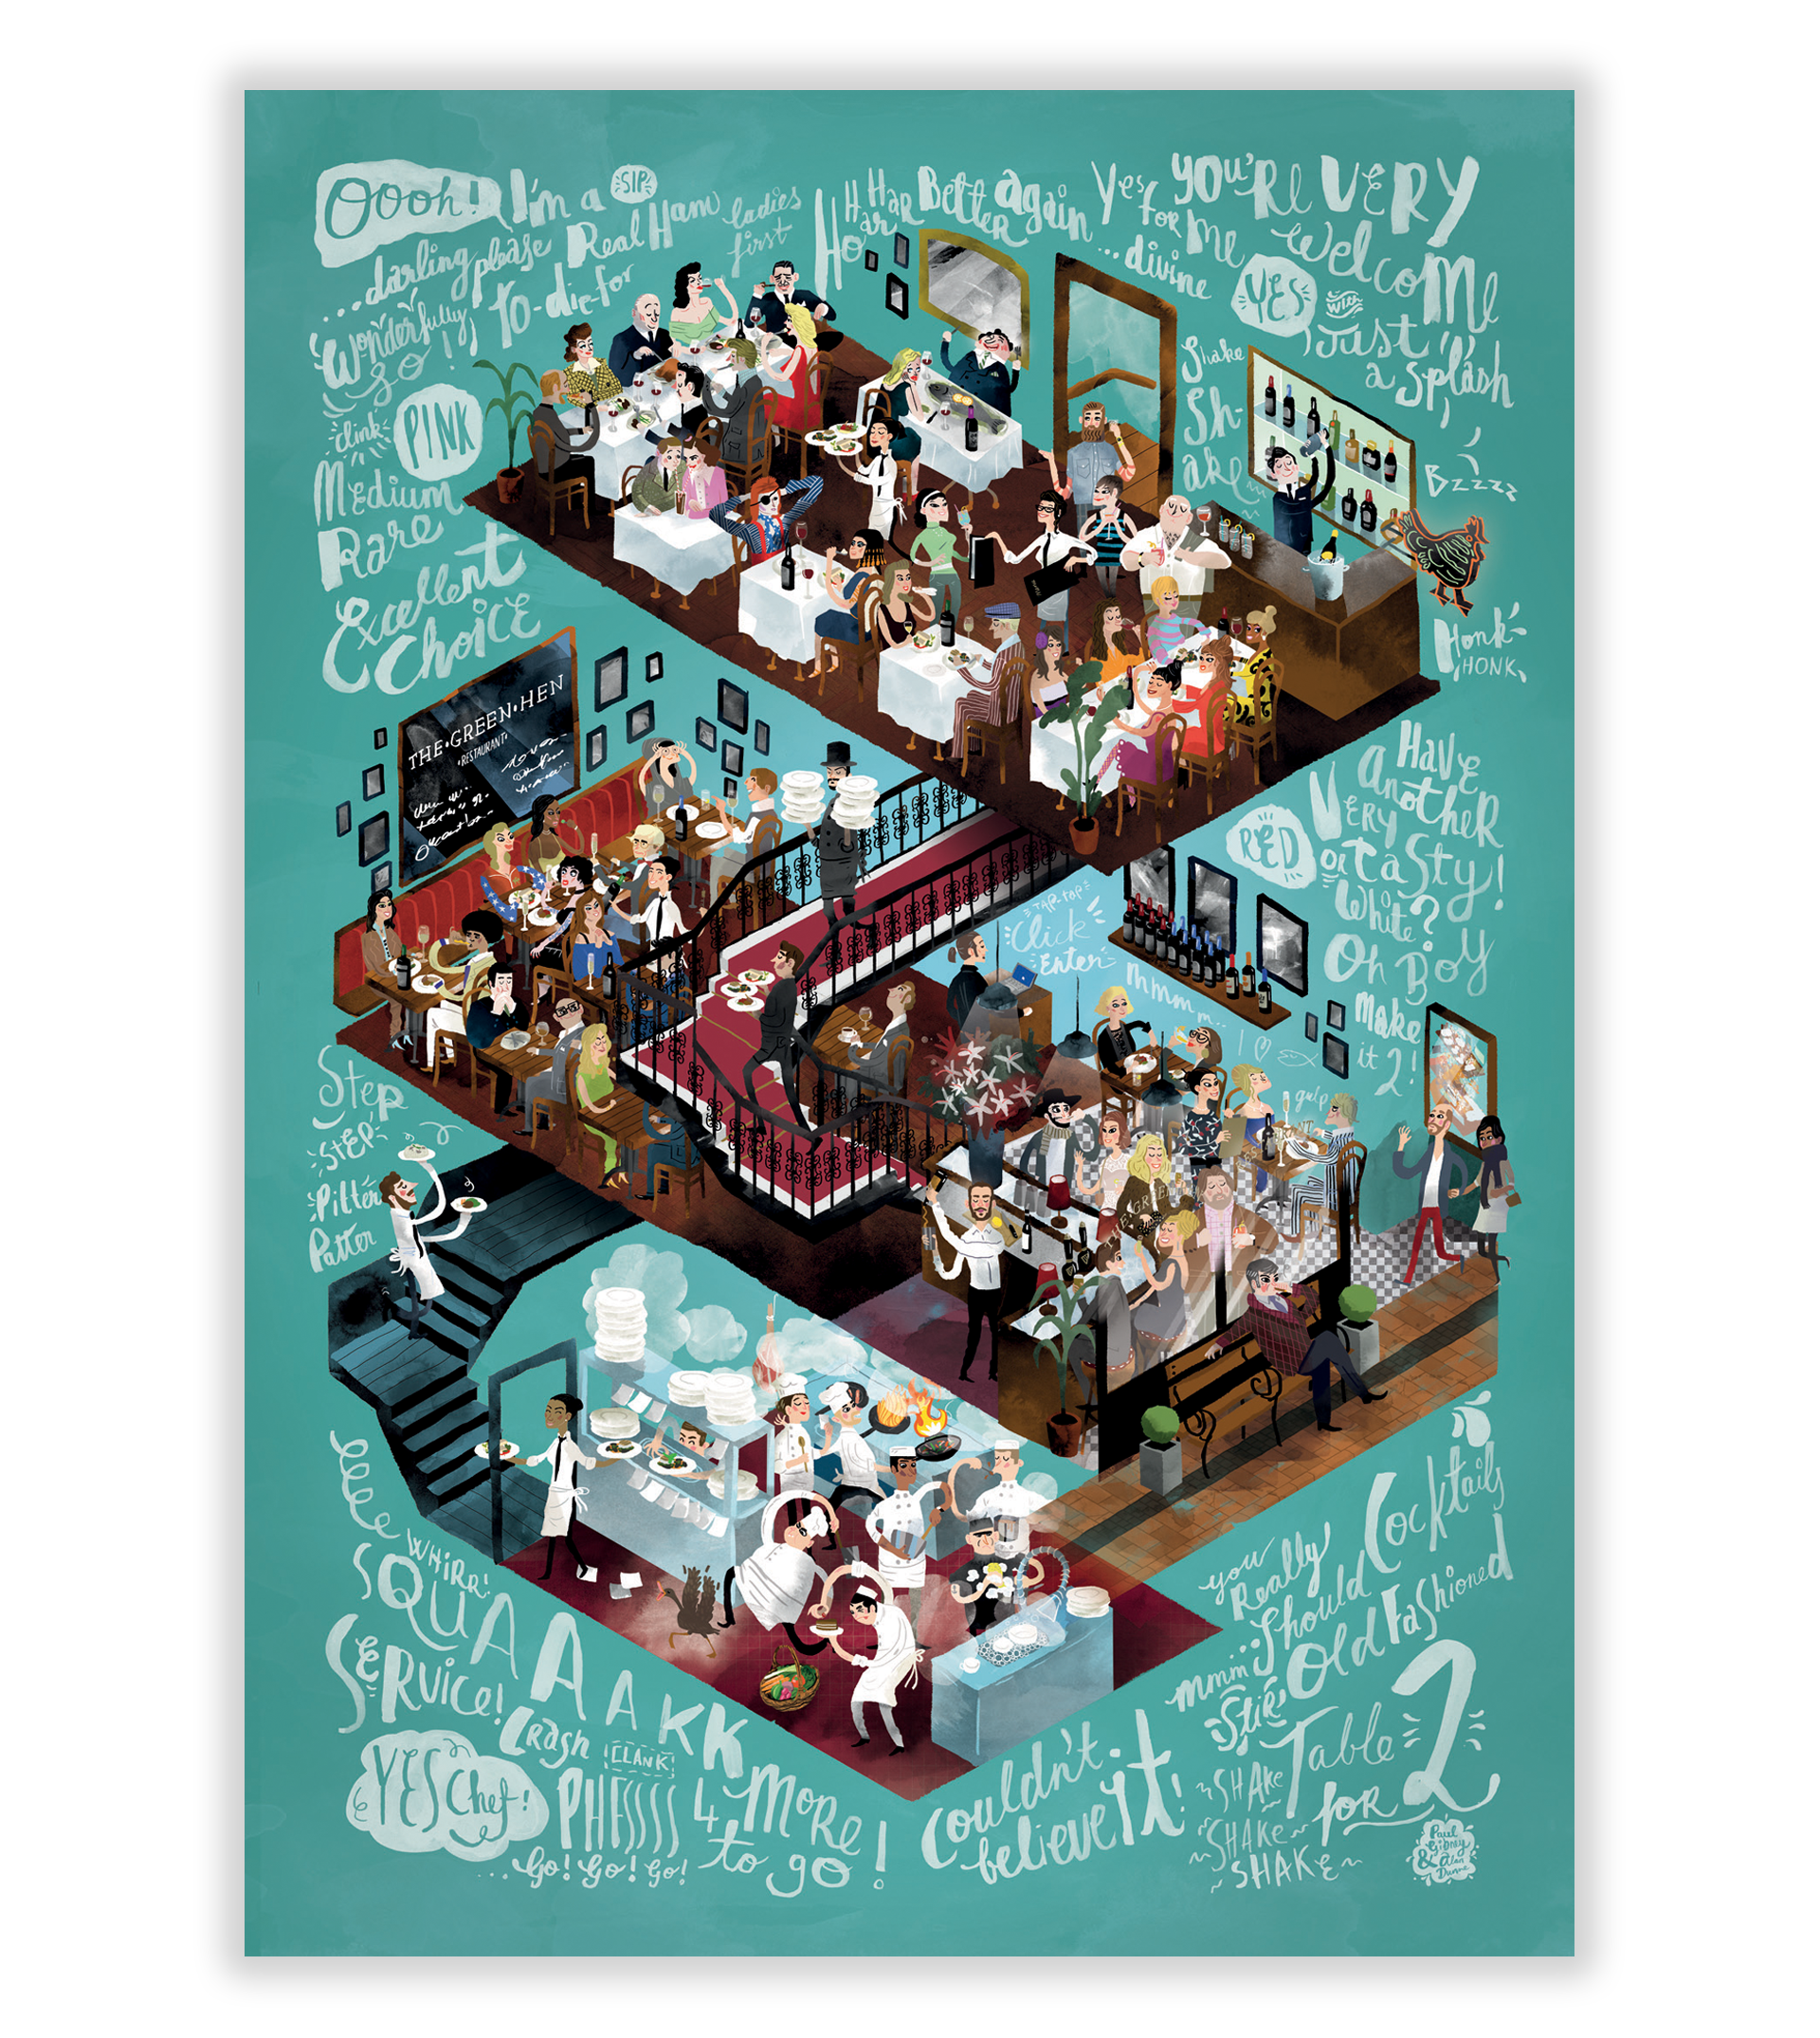 Cover image: The Green Hen Restaurant | Illustration